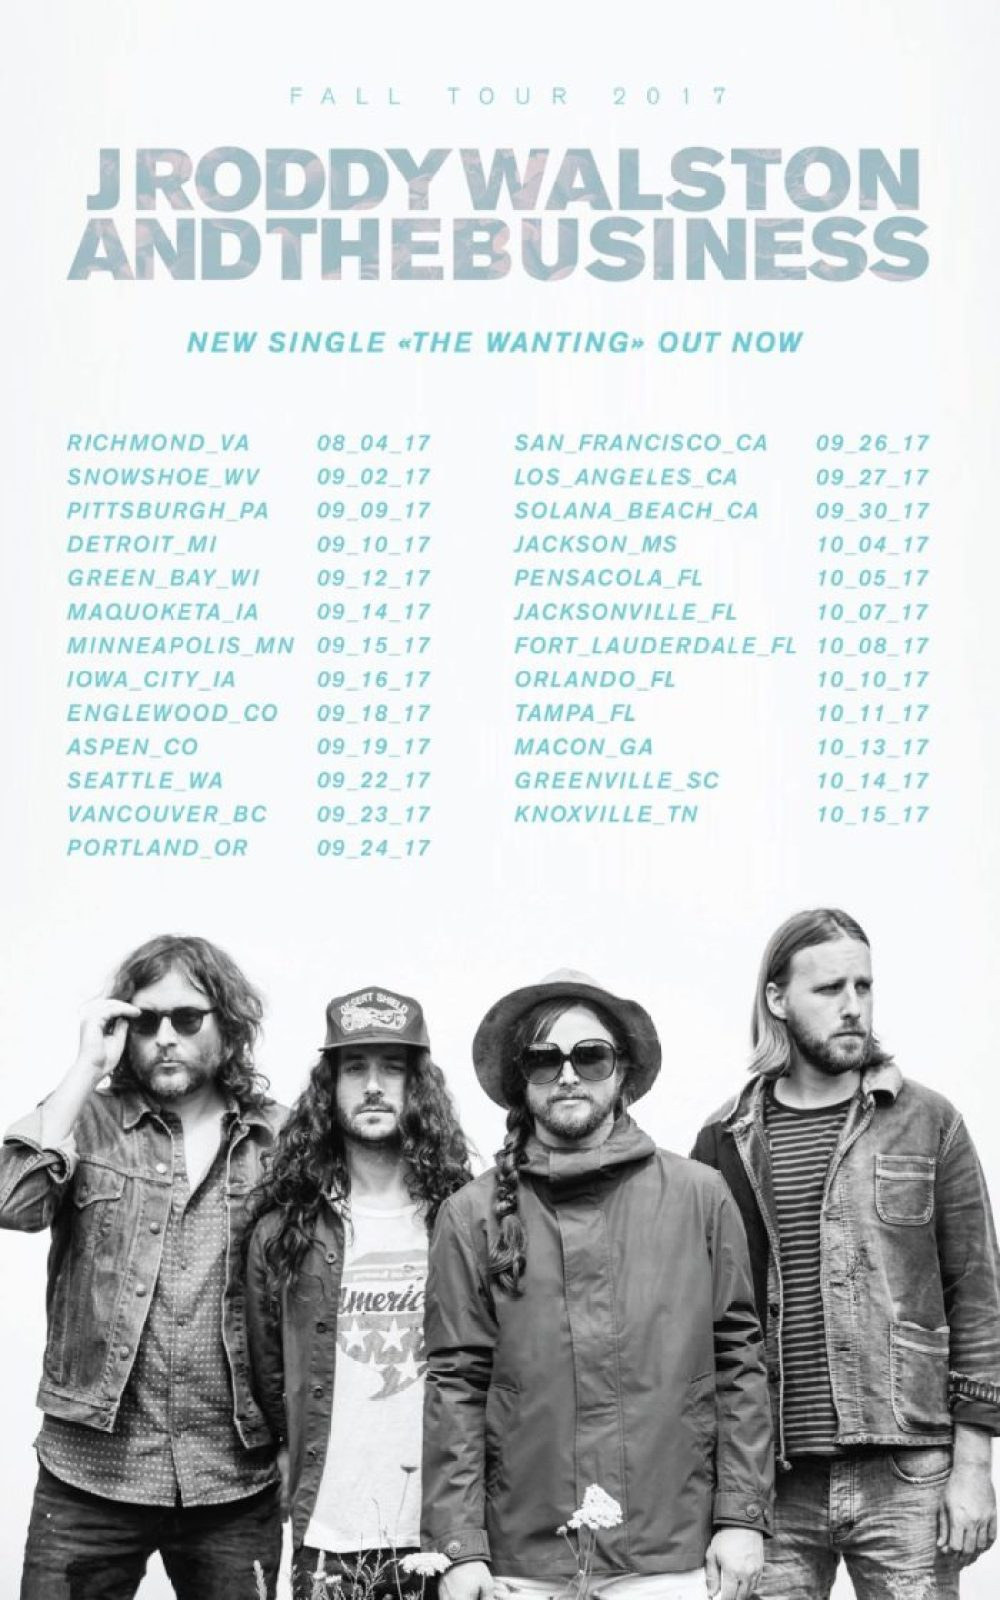 J Roddy Walston And The Business 2017 tour dates poster